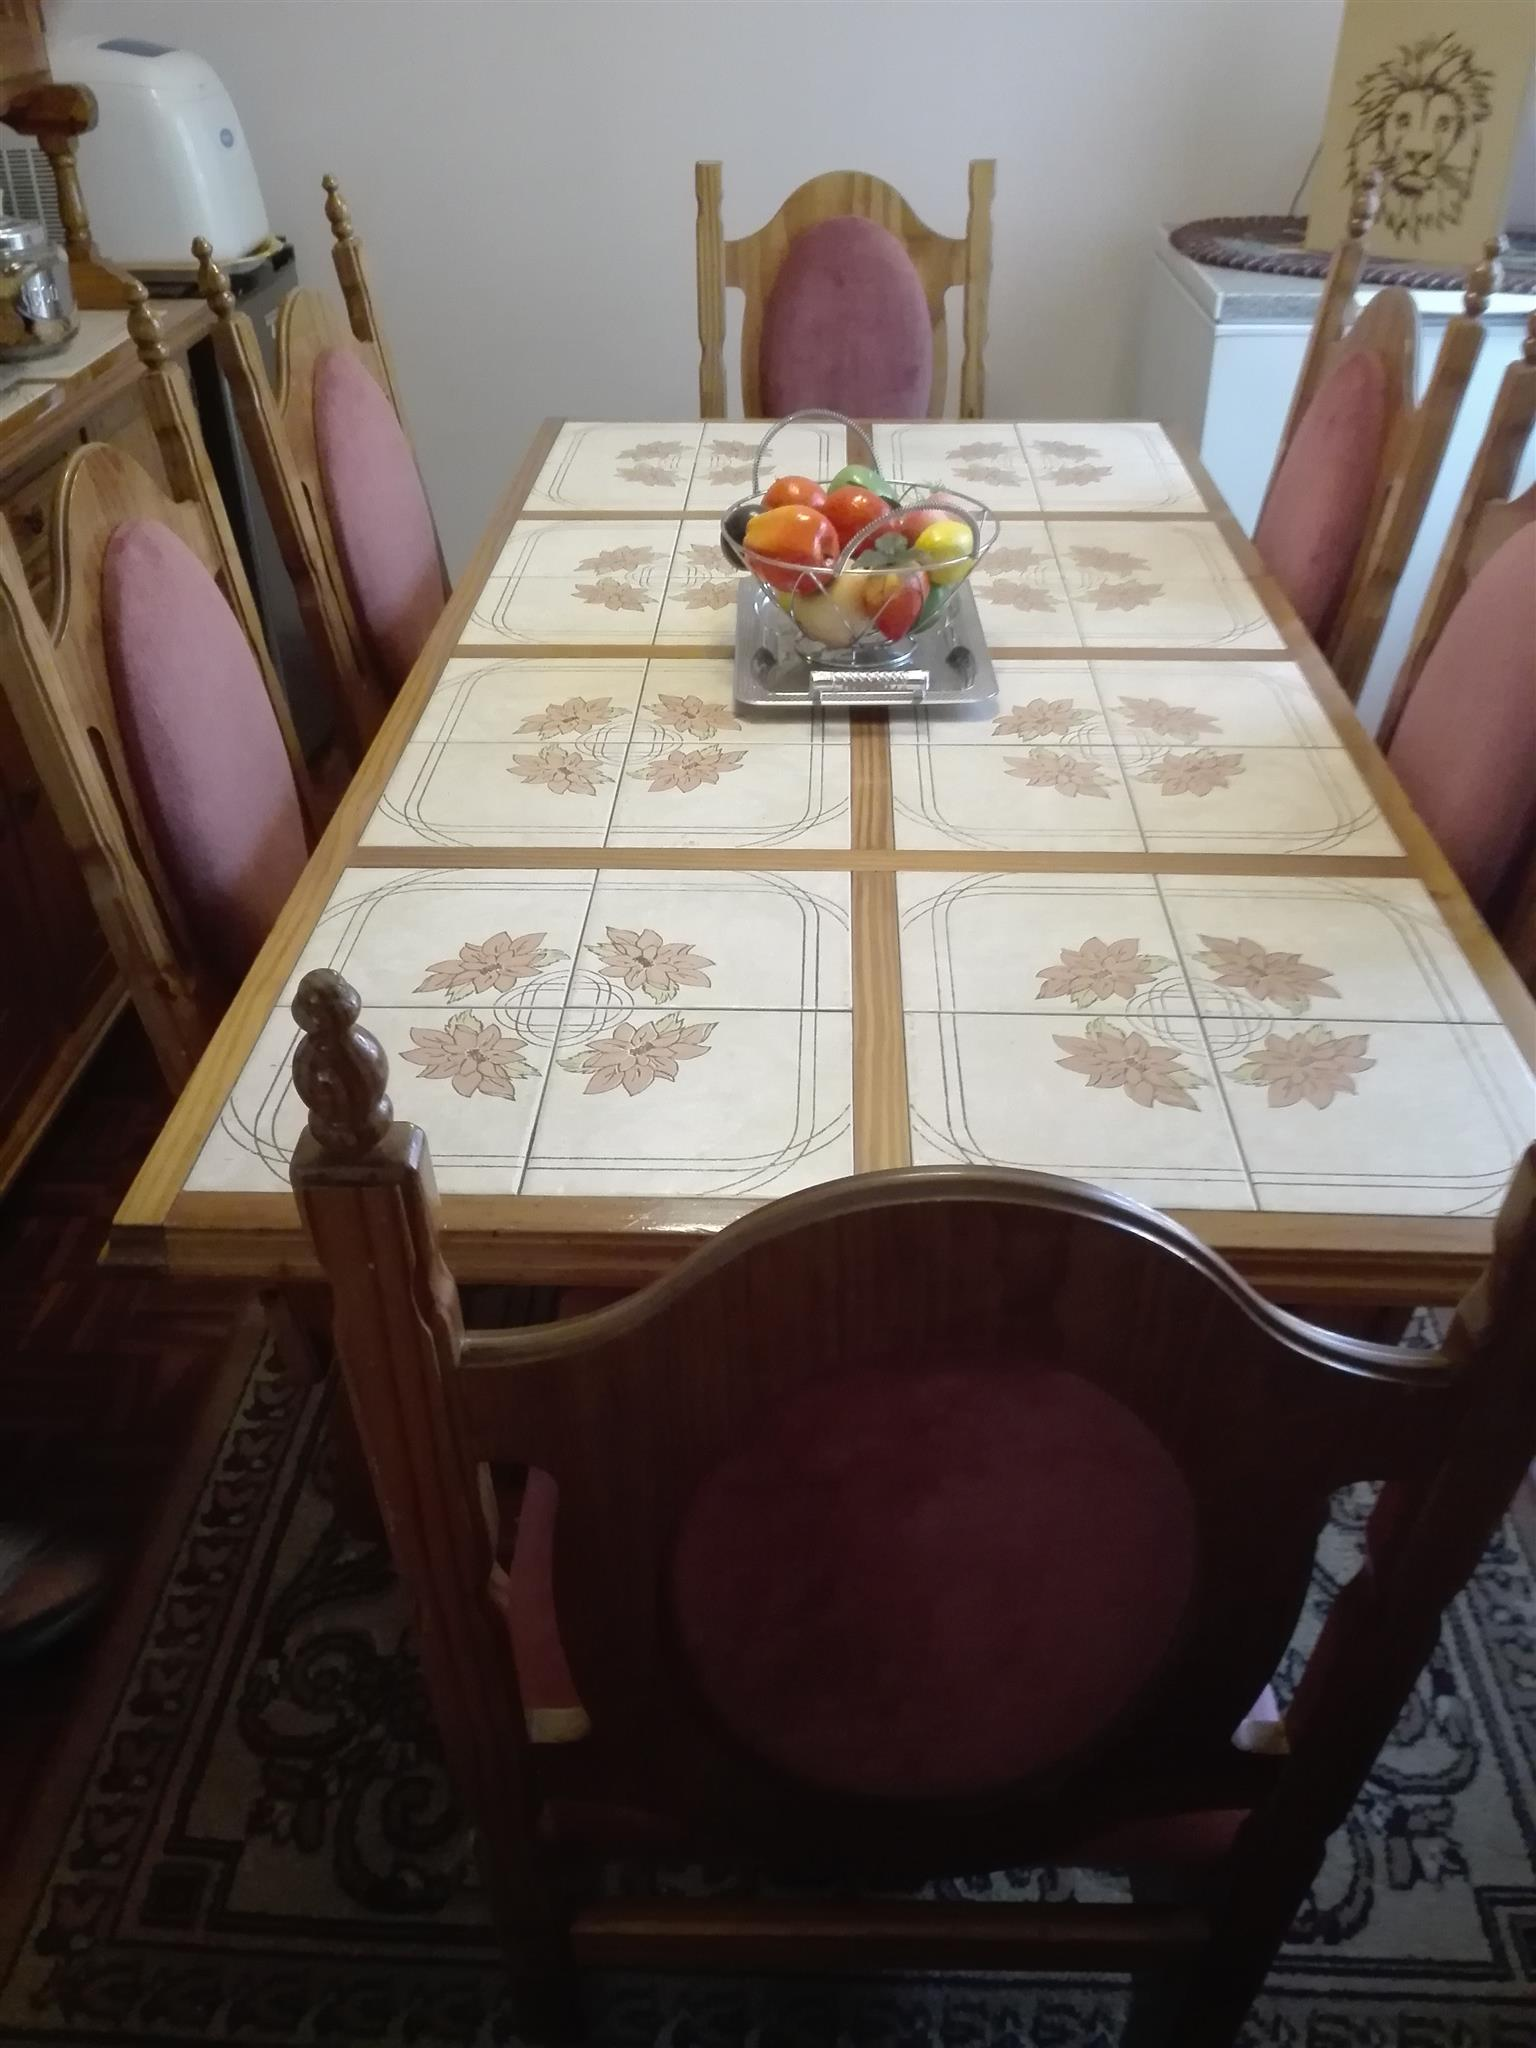 SIX SEATER DINING ROOM WITH SIDEBOARD